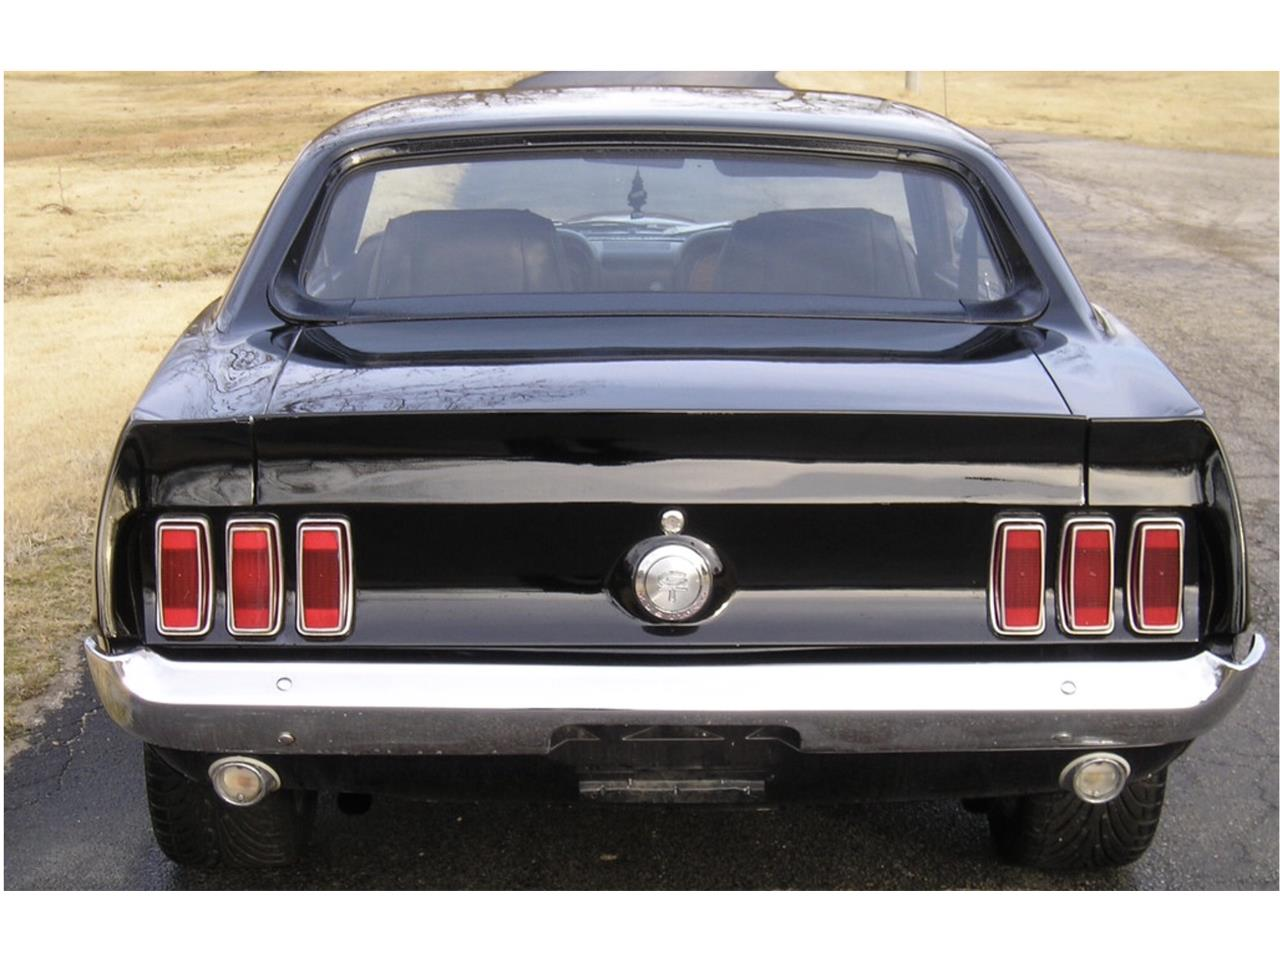 Large picture of 1969 mustang gt 26995 00 offered by a private seller km2g